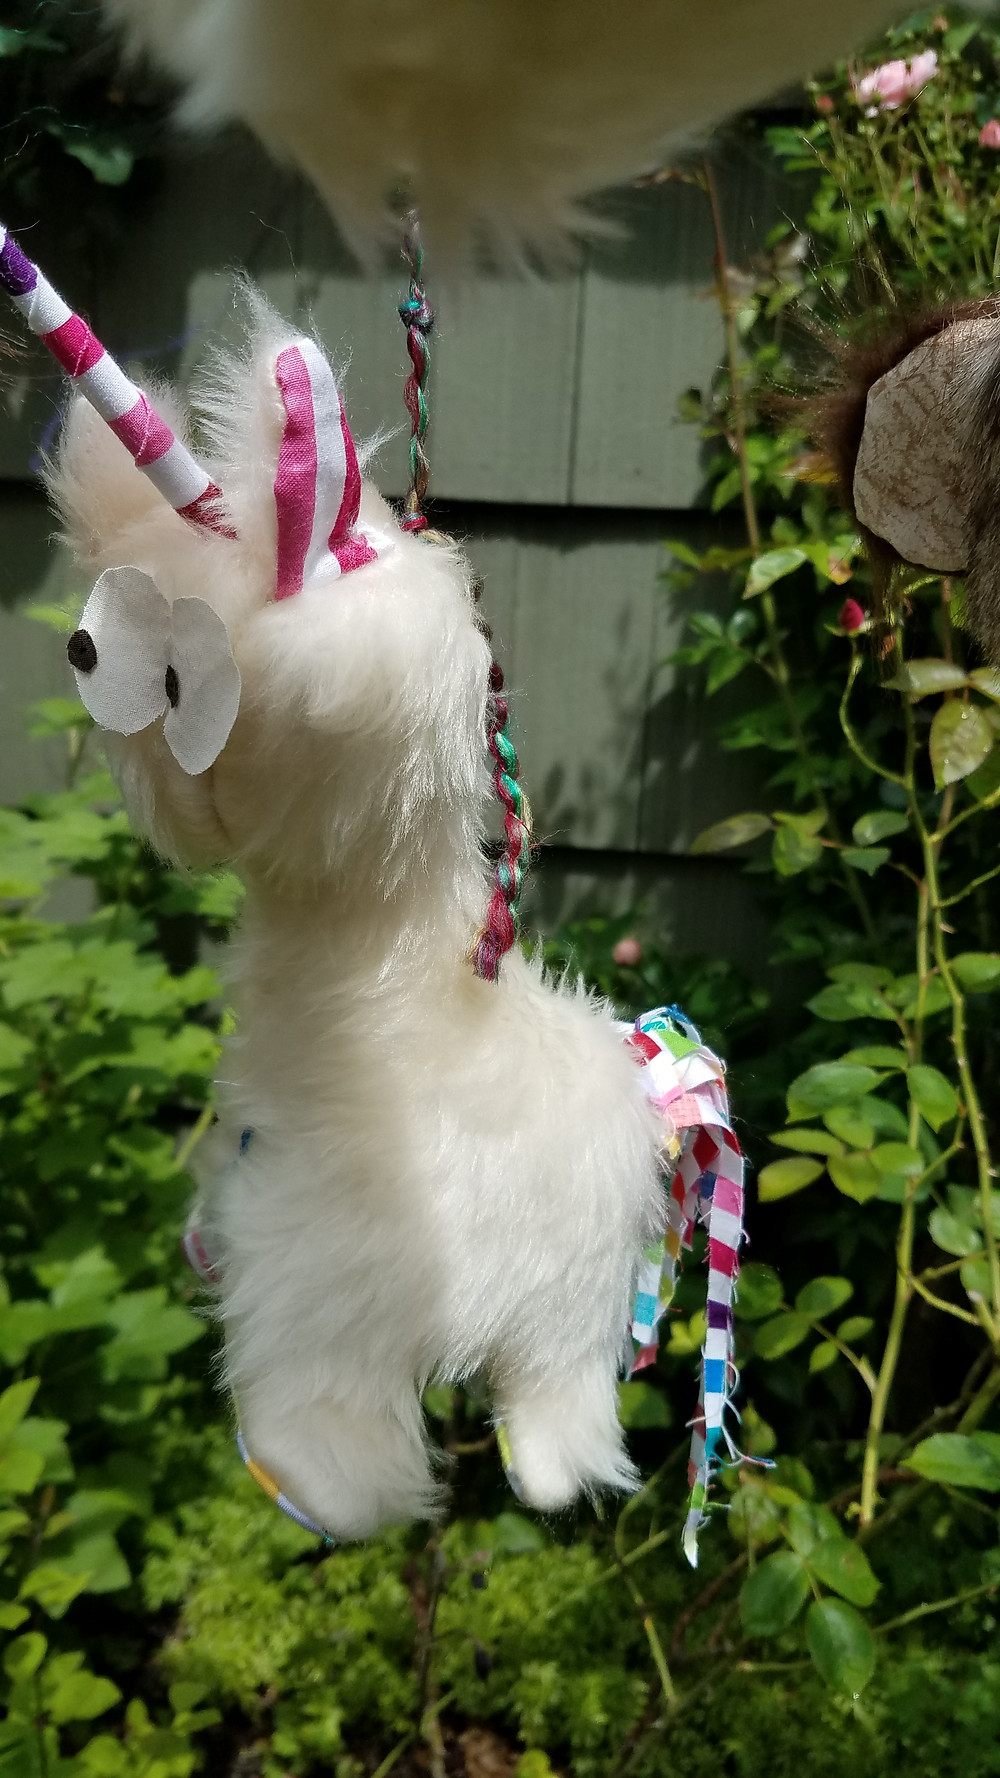 White unicorn with rainbow ears, tail and horn,